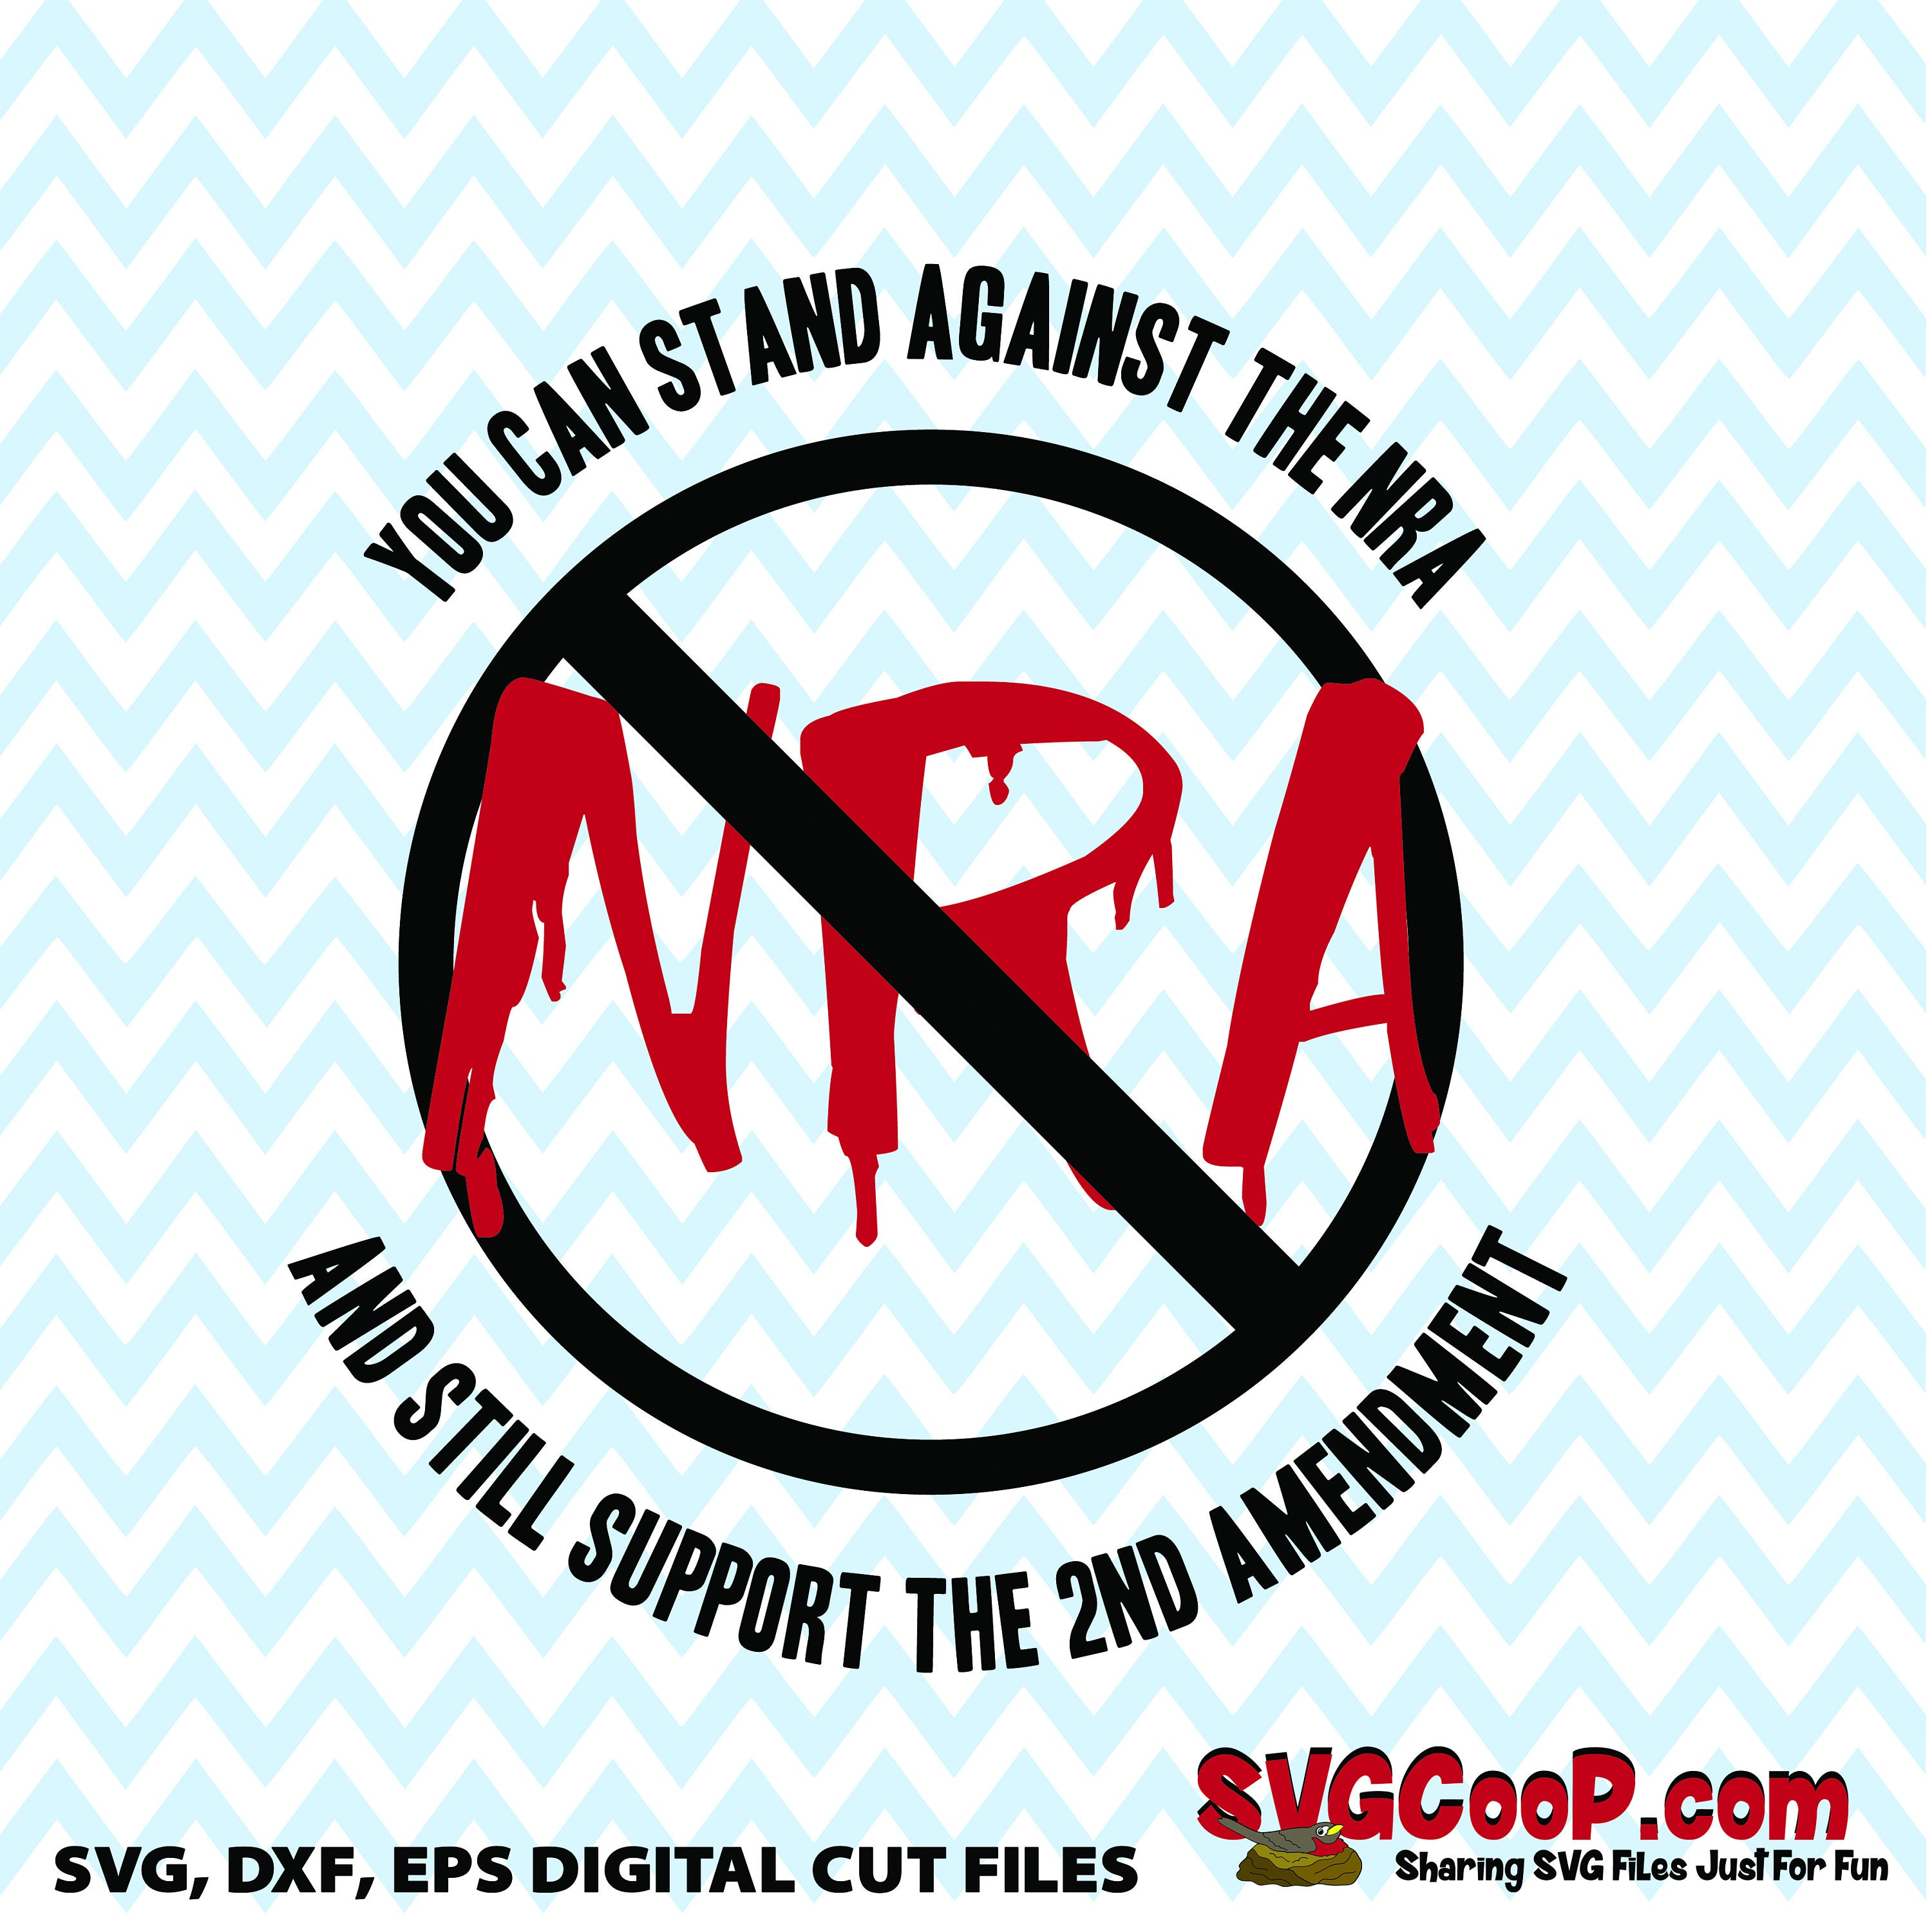 You can stand against the NRA and still support the 2nd | Etsy